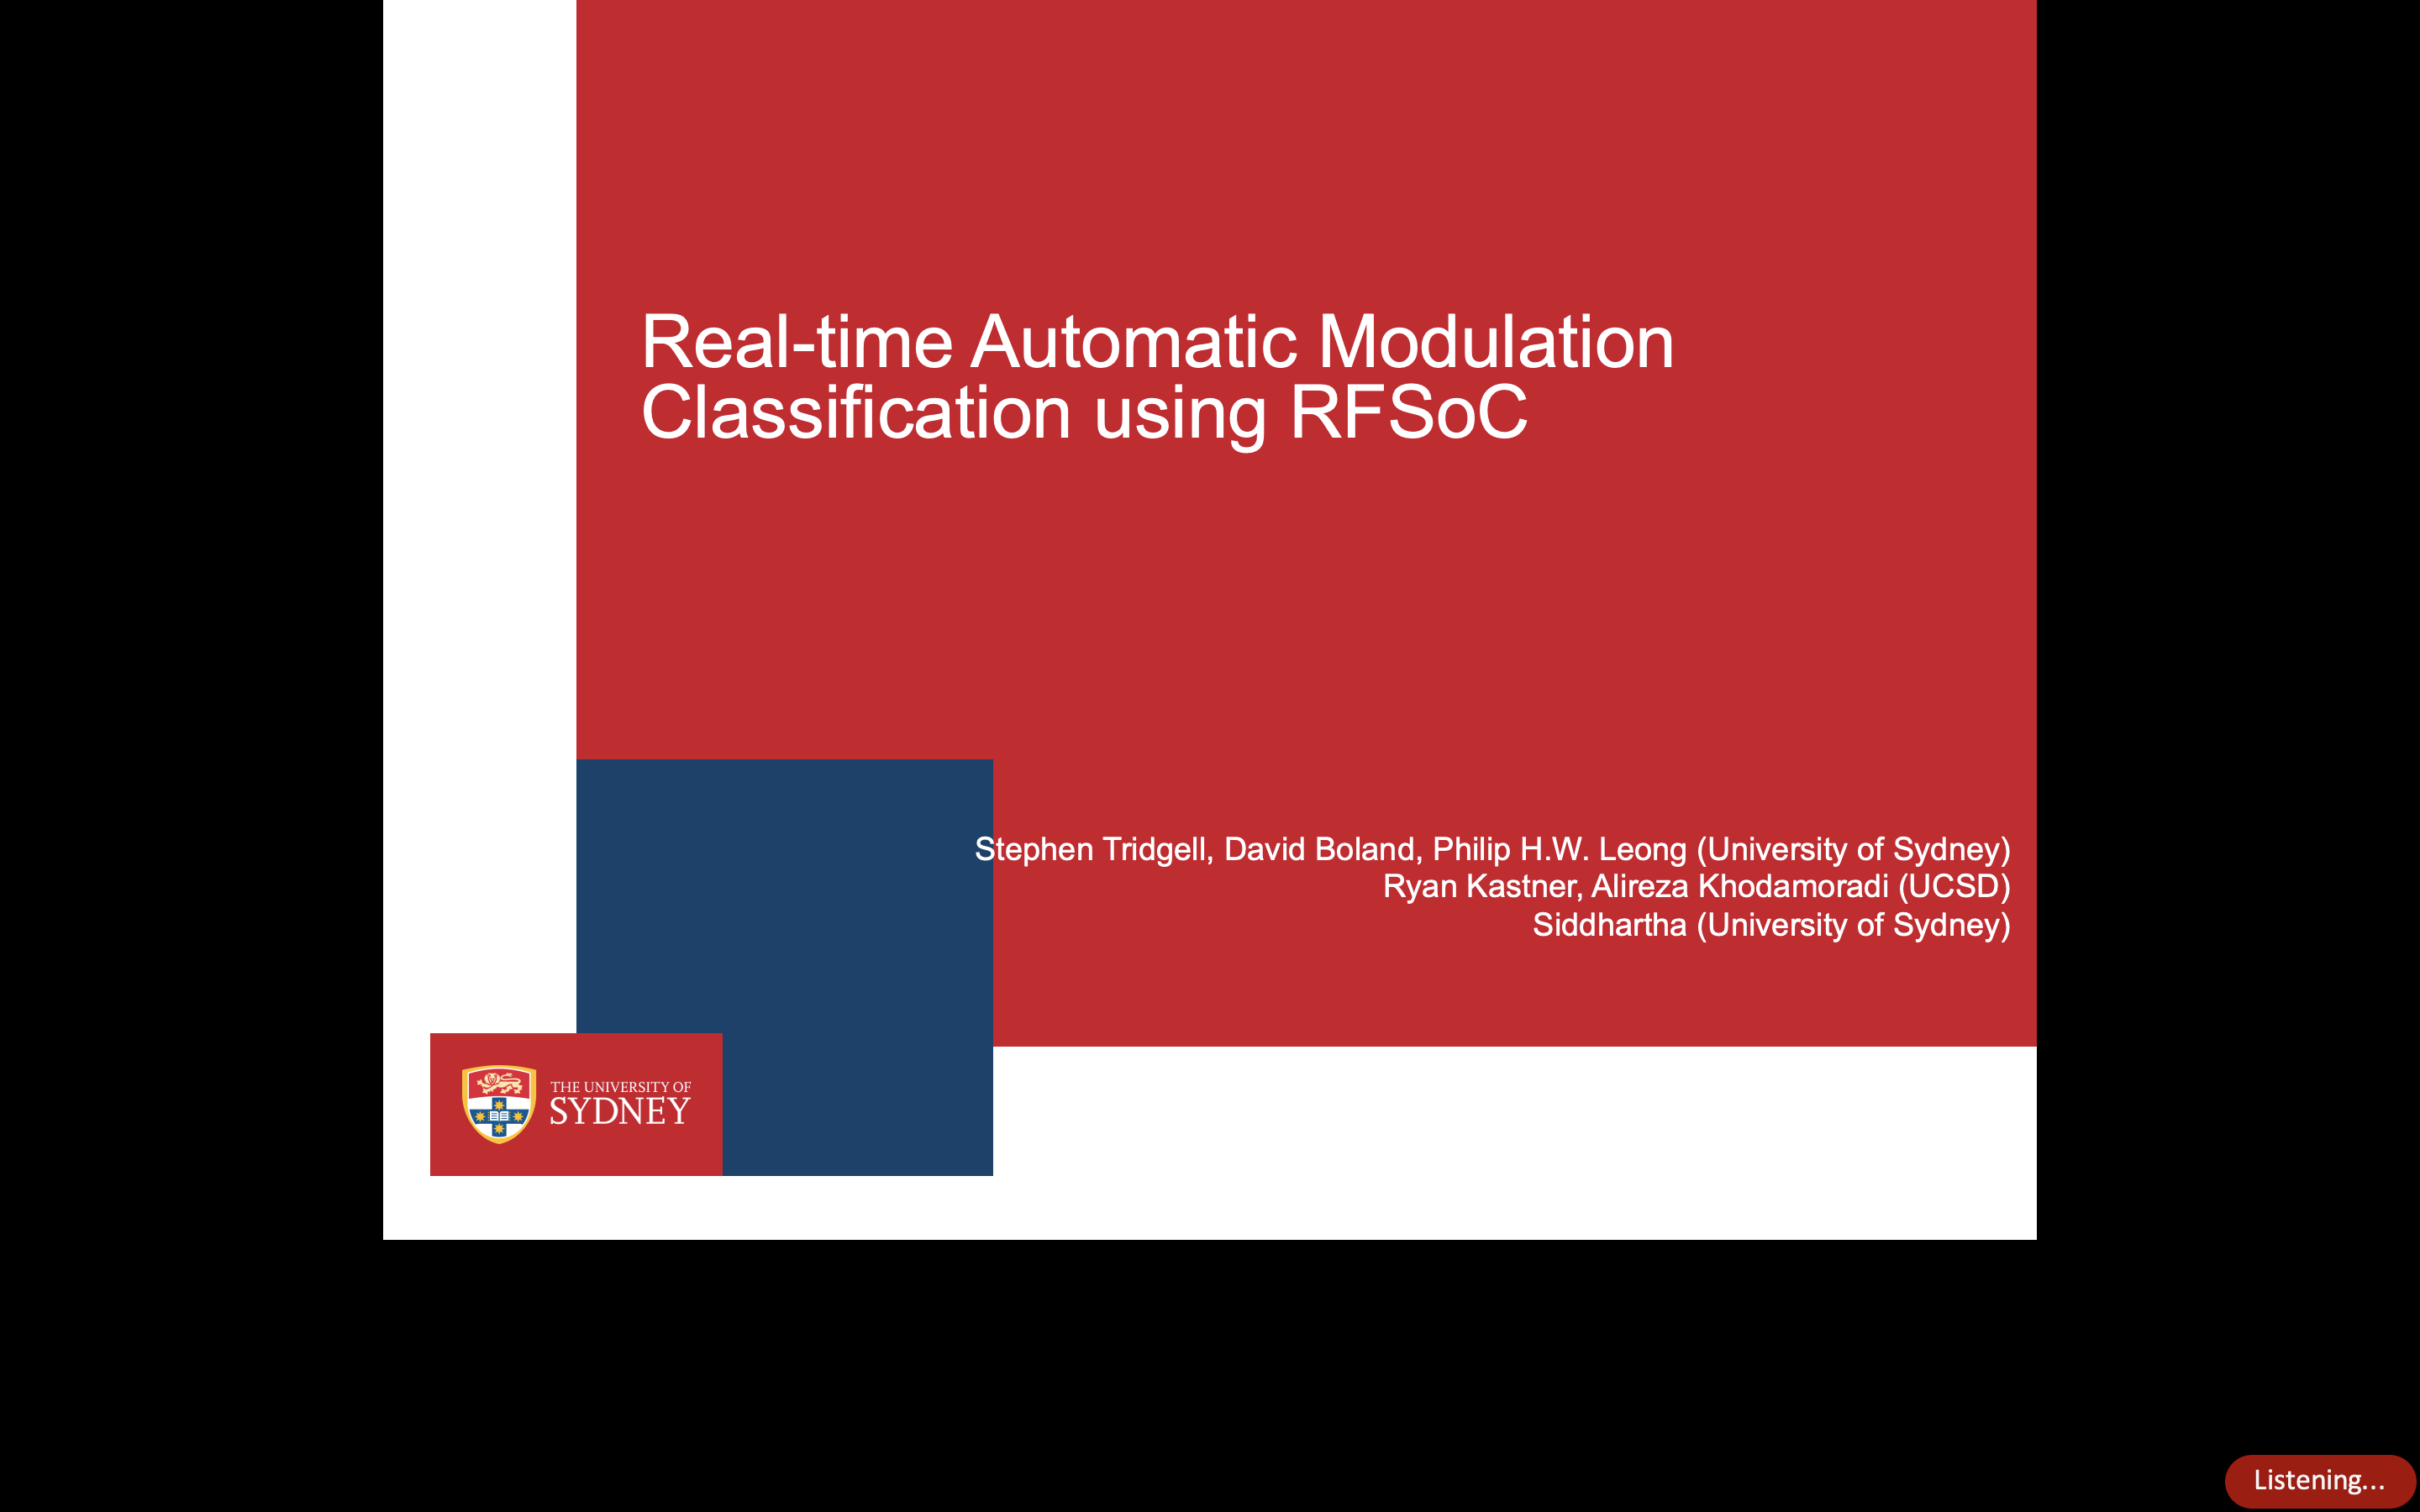 Real-time automatic modulation classification using RFSoC